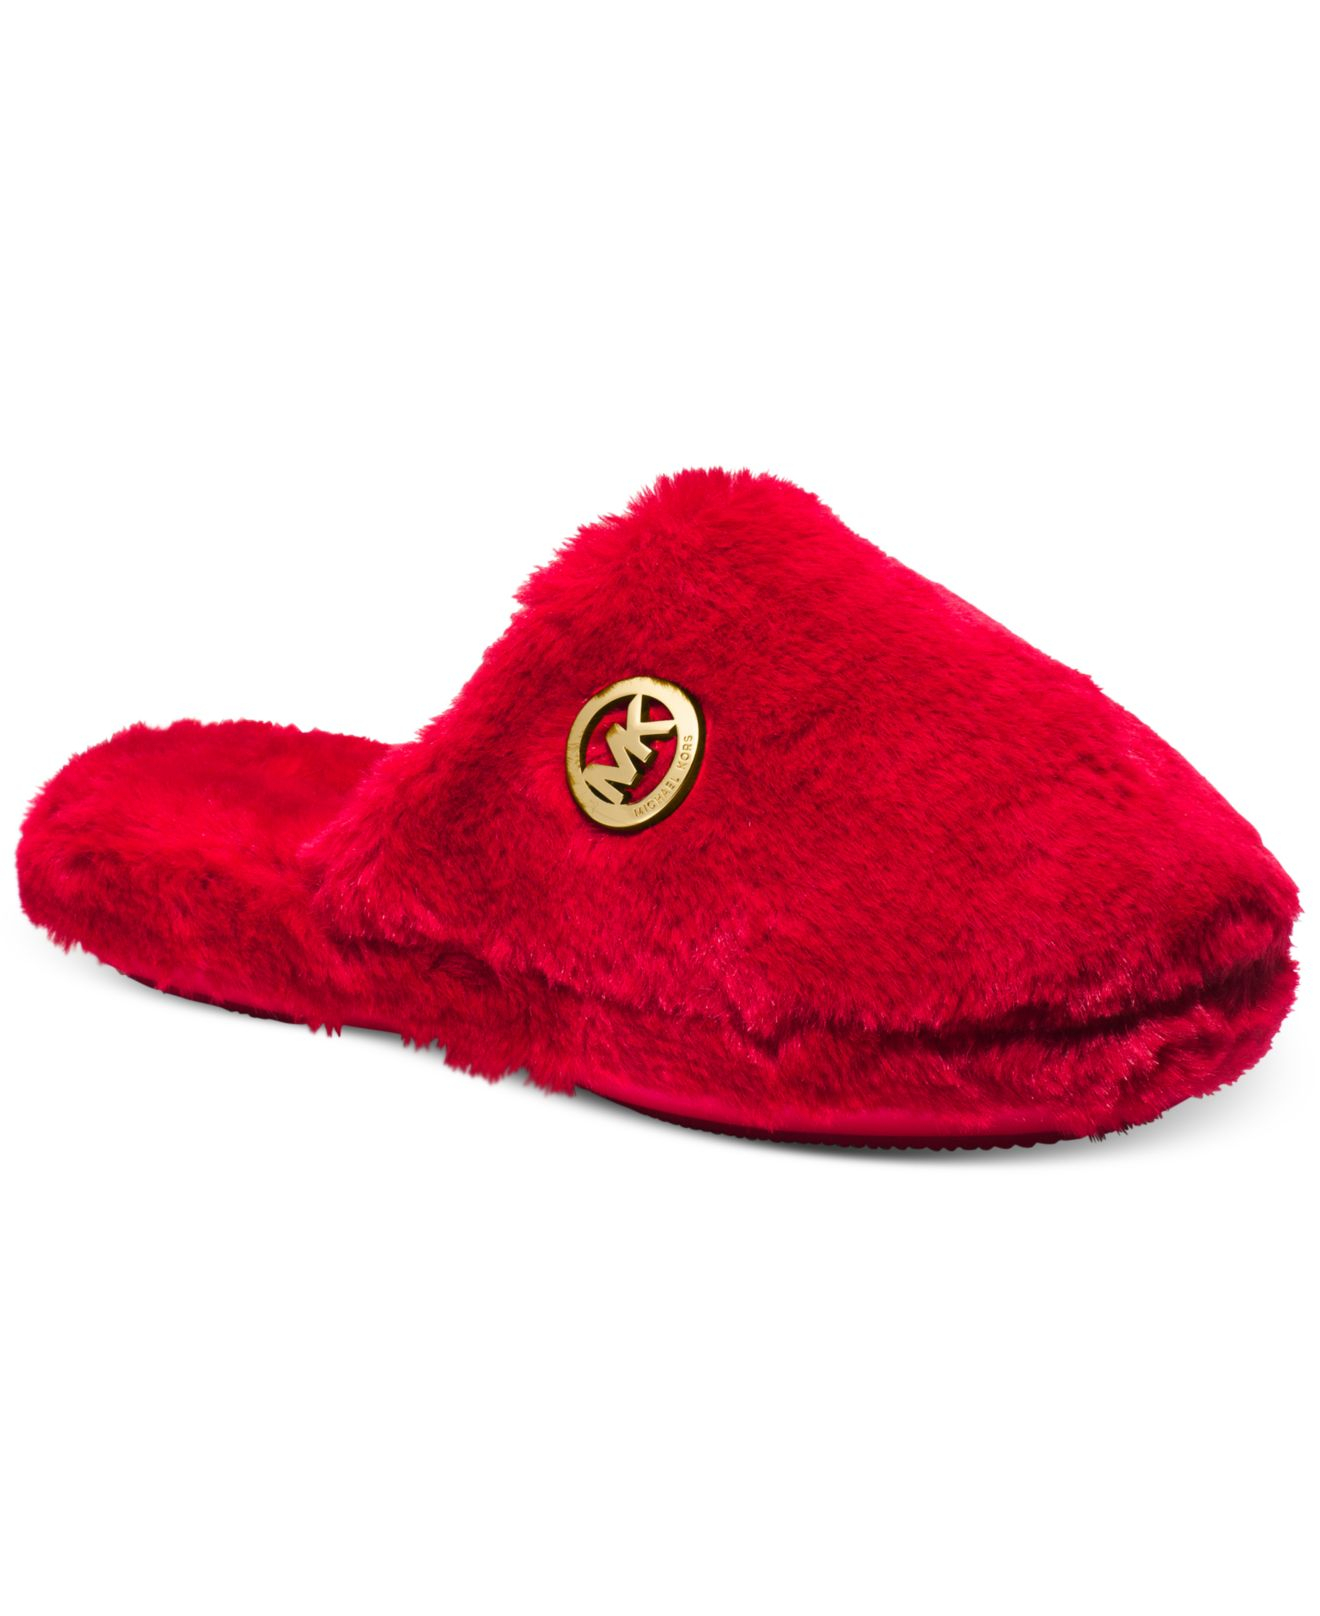 Mk Faux-Fur Slippers in Red